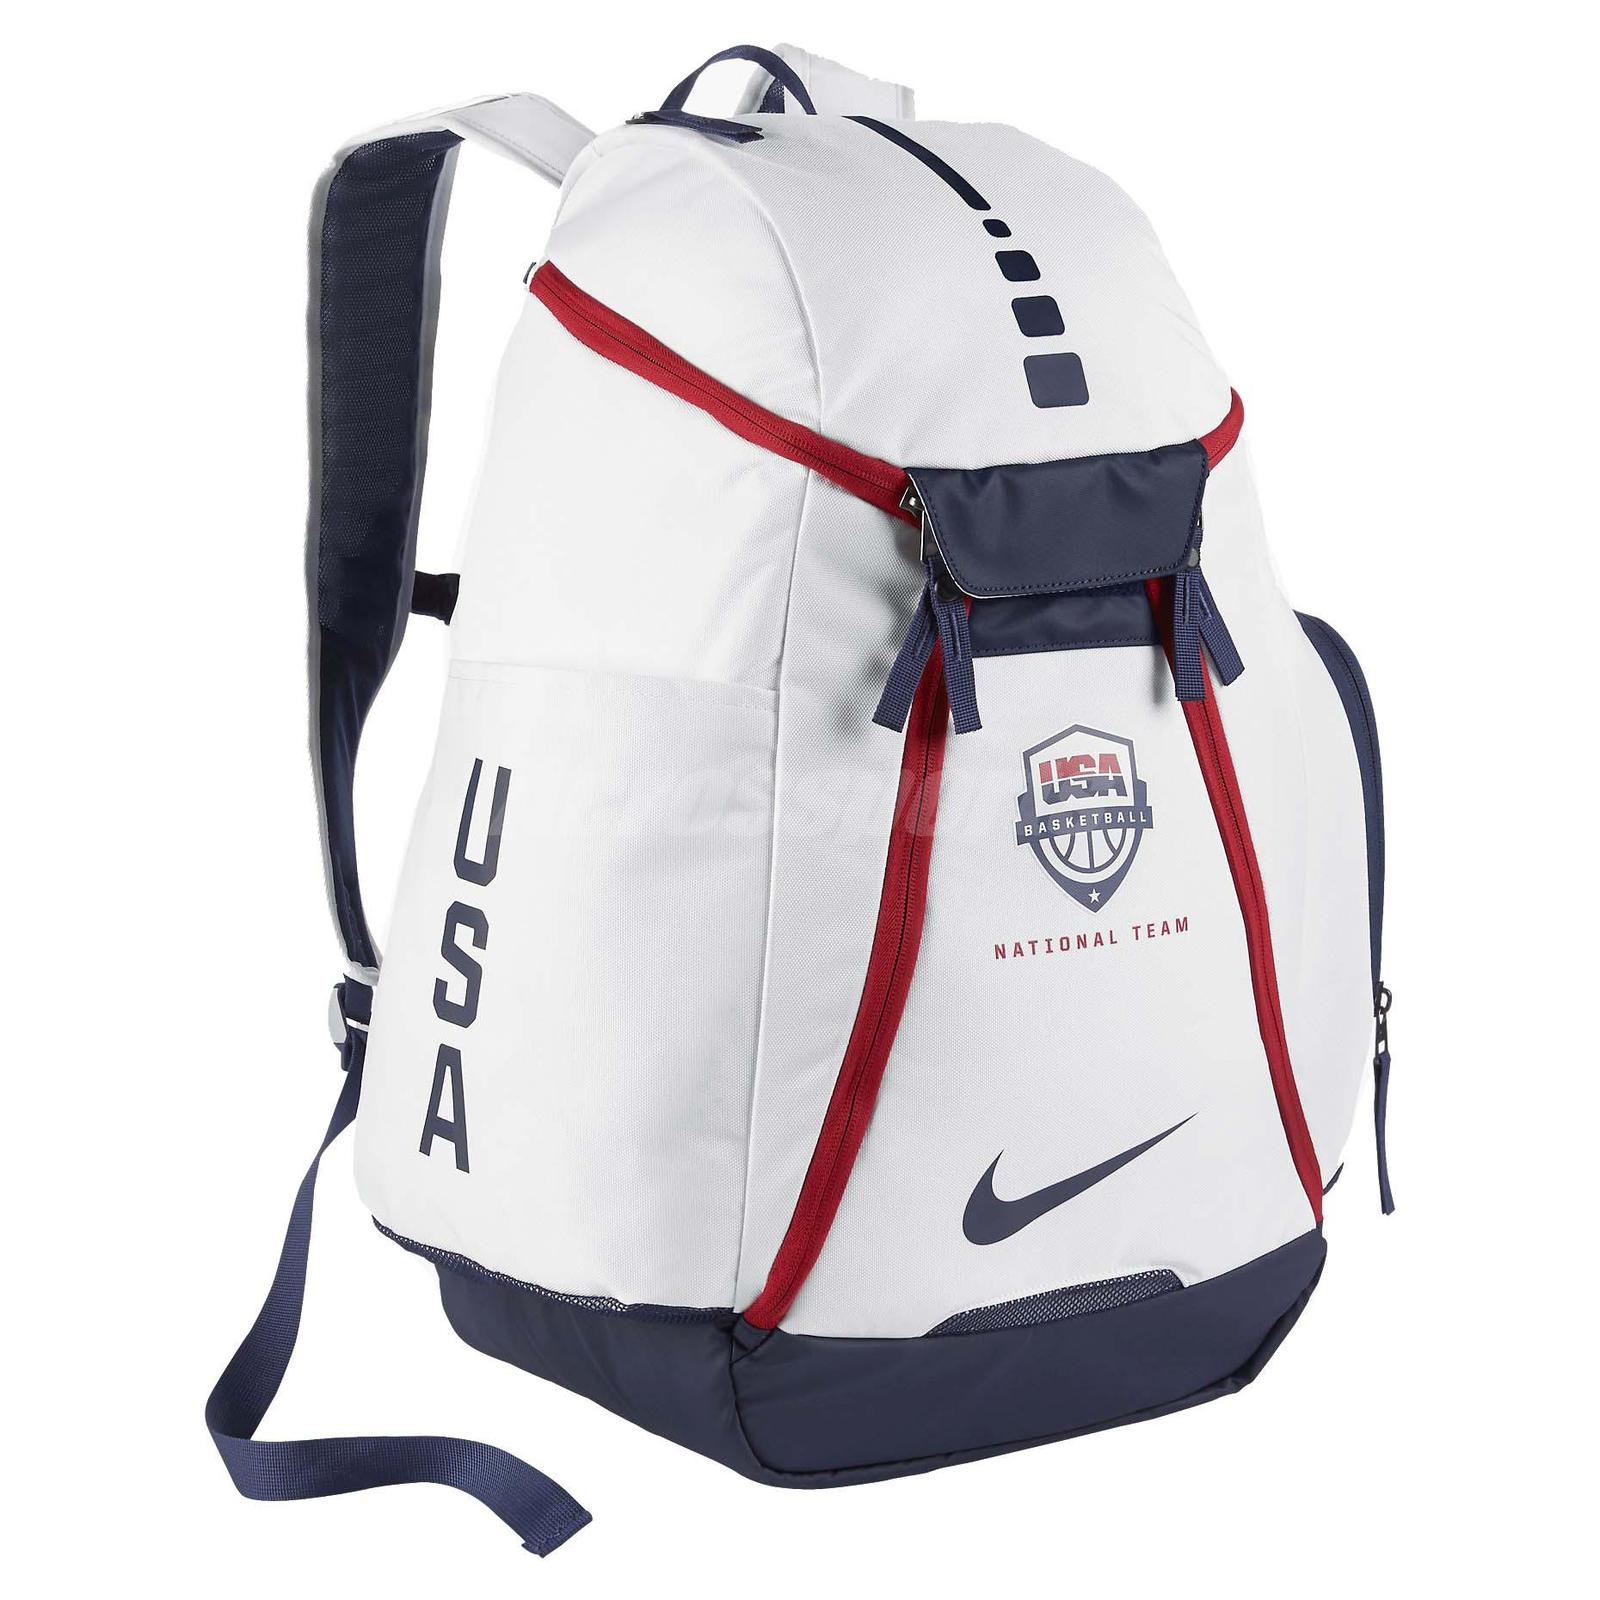 Primary image for 2018 Fashion backpack USA Dream team Durant